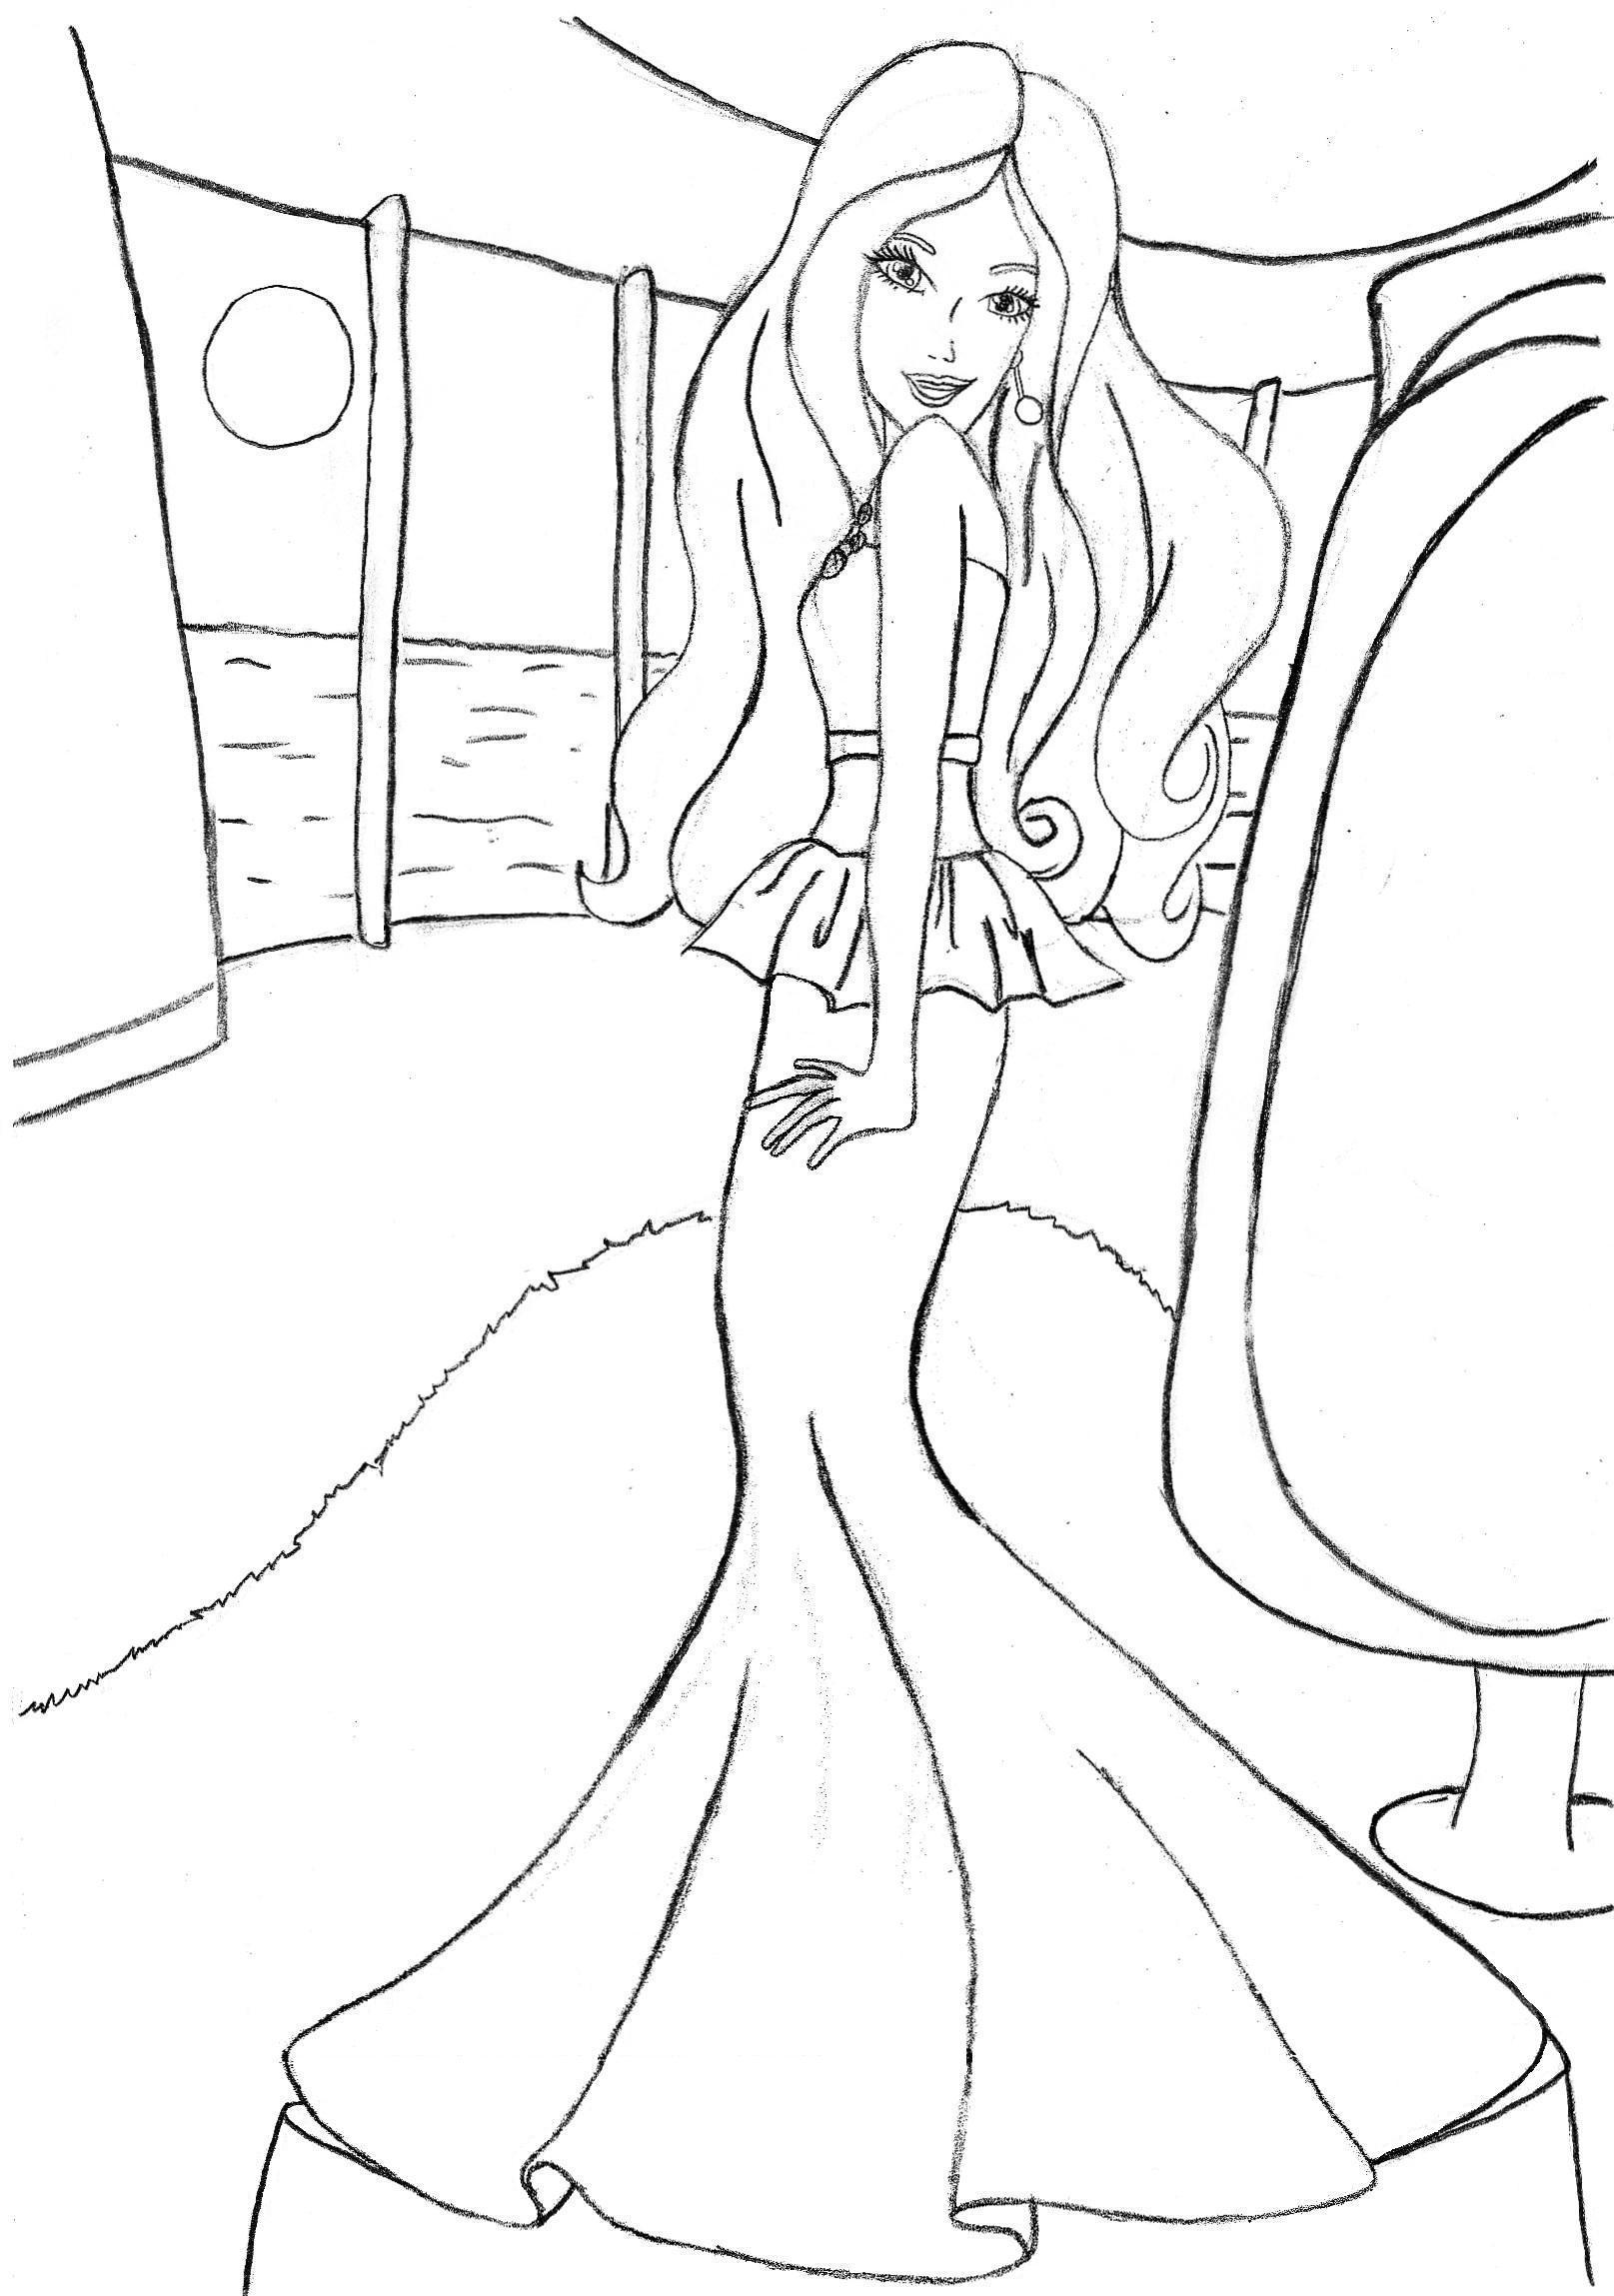 Free printable coloring pages barbie princess - Image Coloring Pages Online Free Printable Barbie Coloring Pages Fresh In Painting Free Coloring Kids Jpg Barbie Movies Wiki Fandom Powered By Wikia